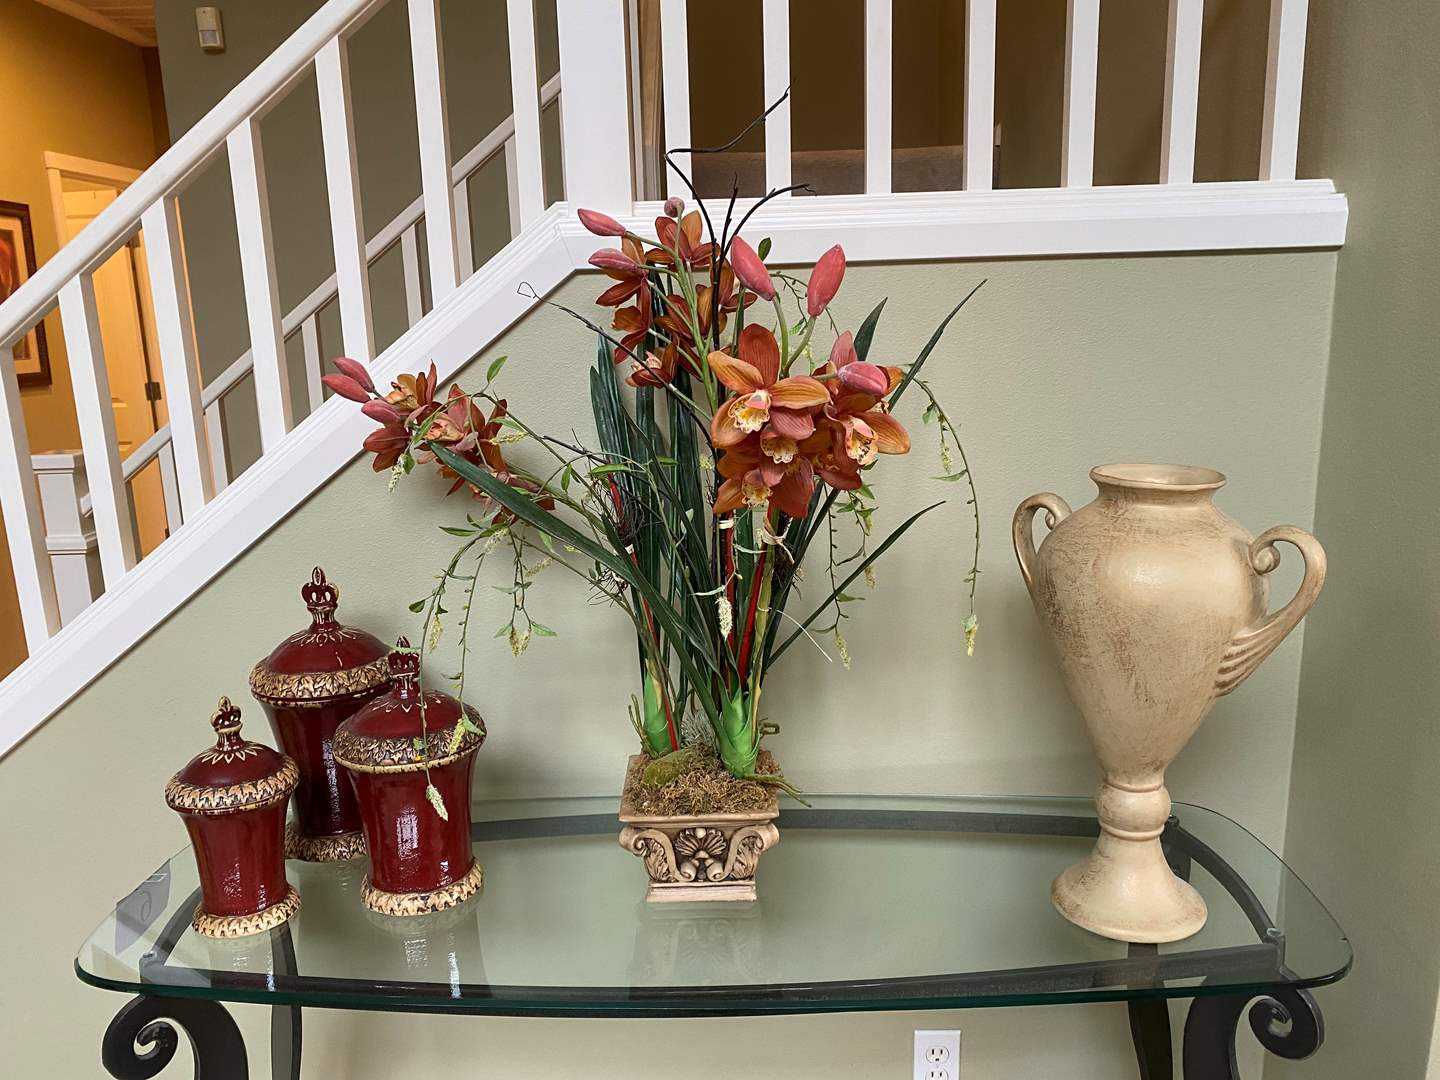 Lot # 8 - Home Decor: Tall Ceramic Vase, Potted Faux Plant, Ceramic Canisters (main image)